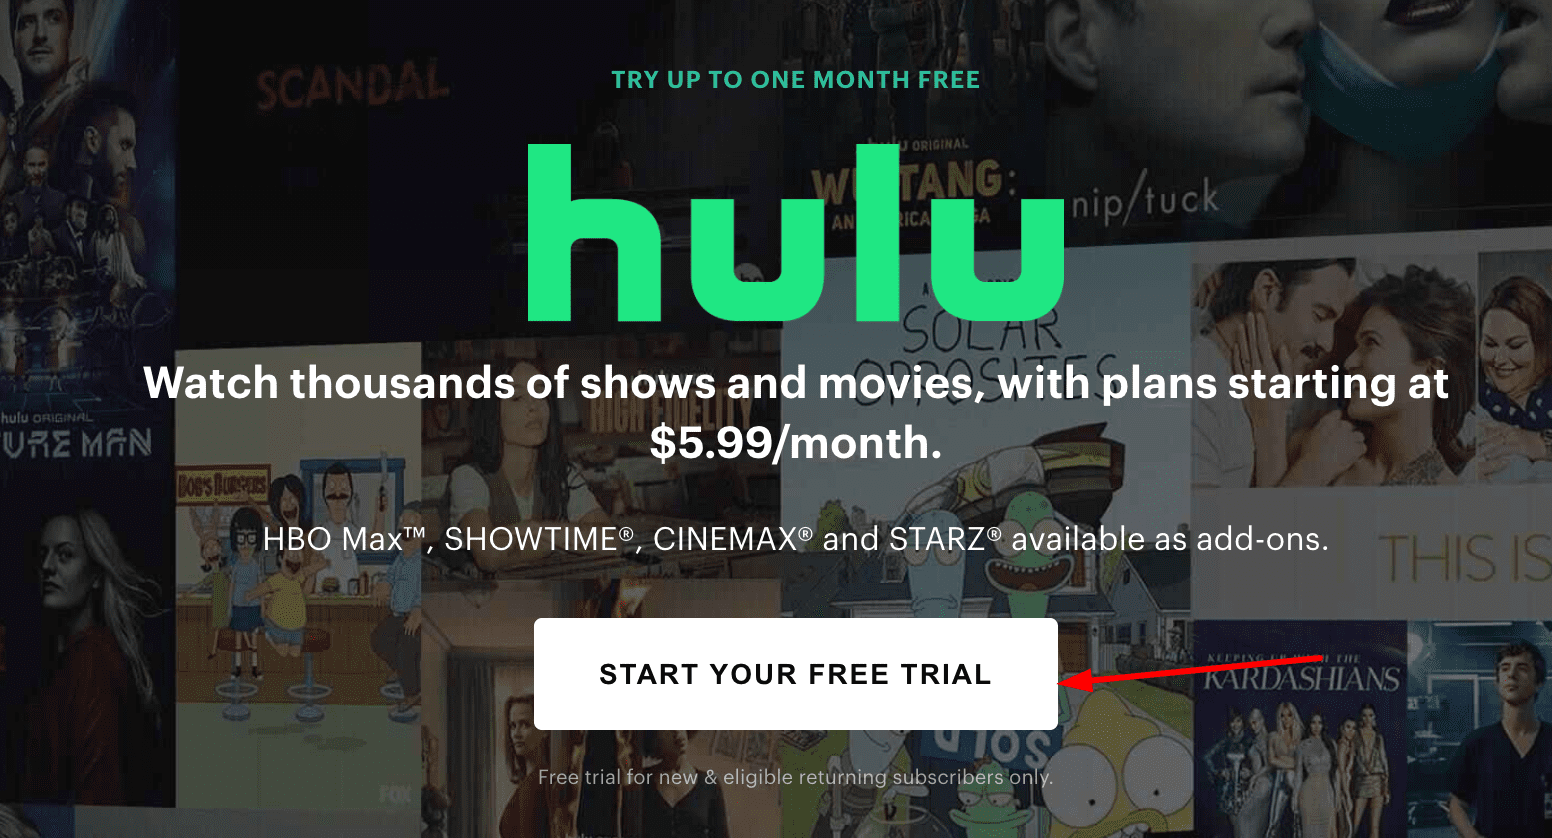 Start Your Free Trial On Hulu